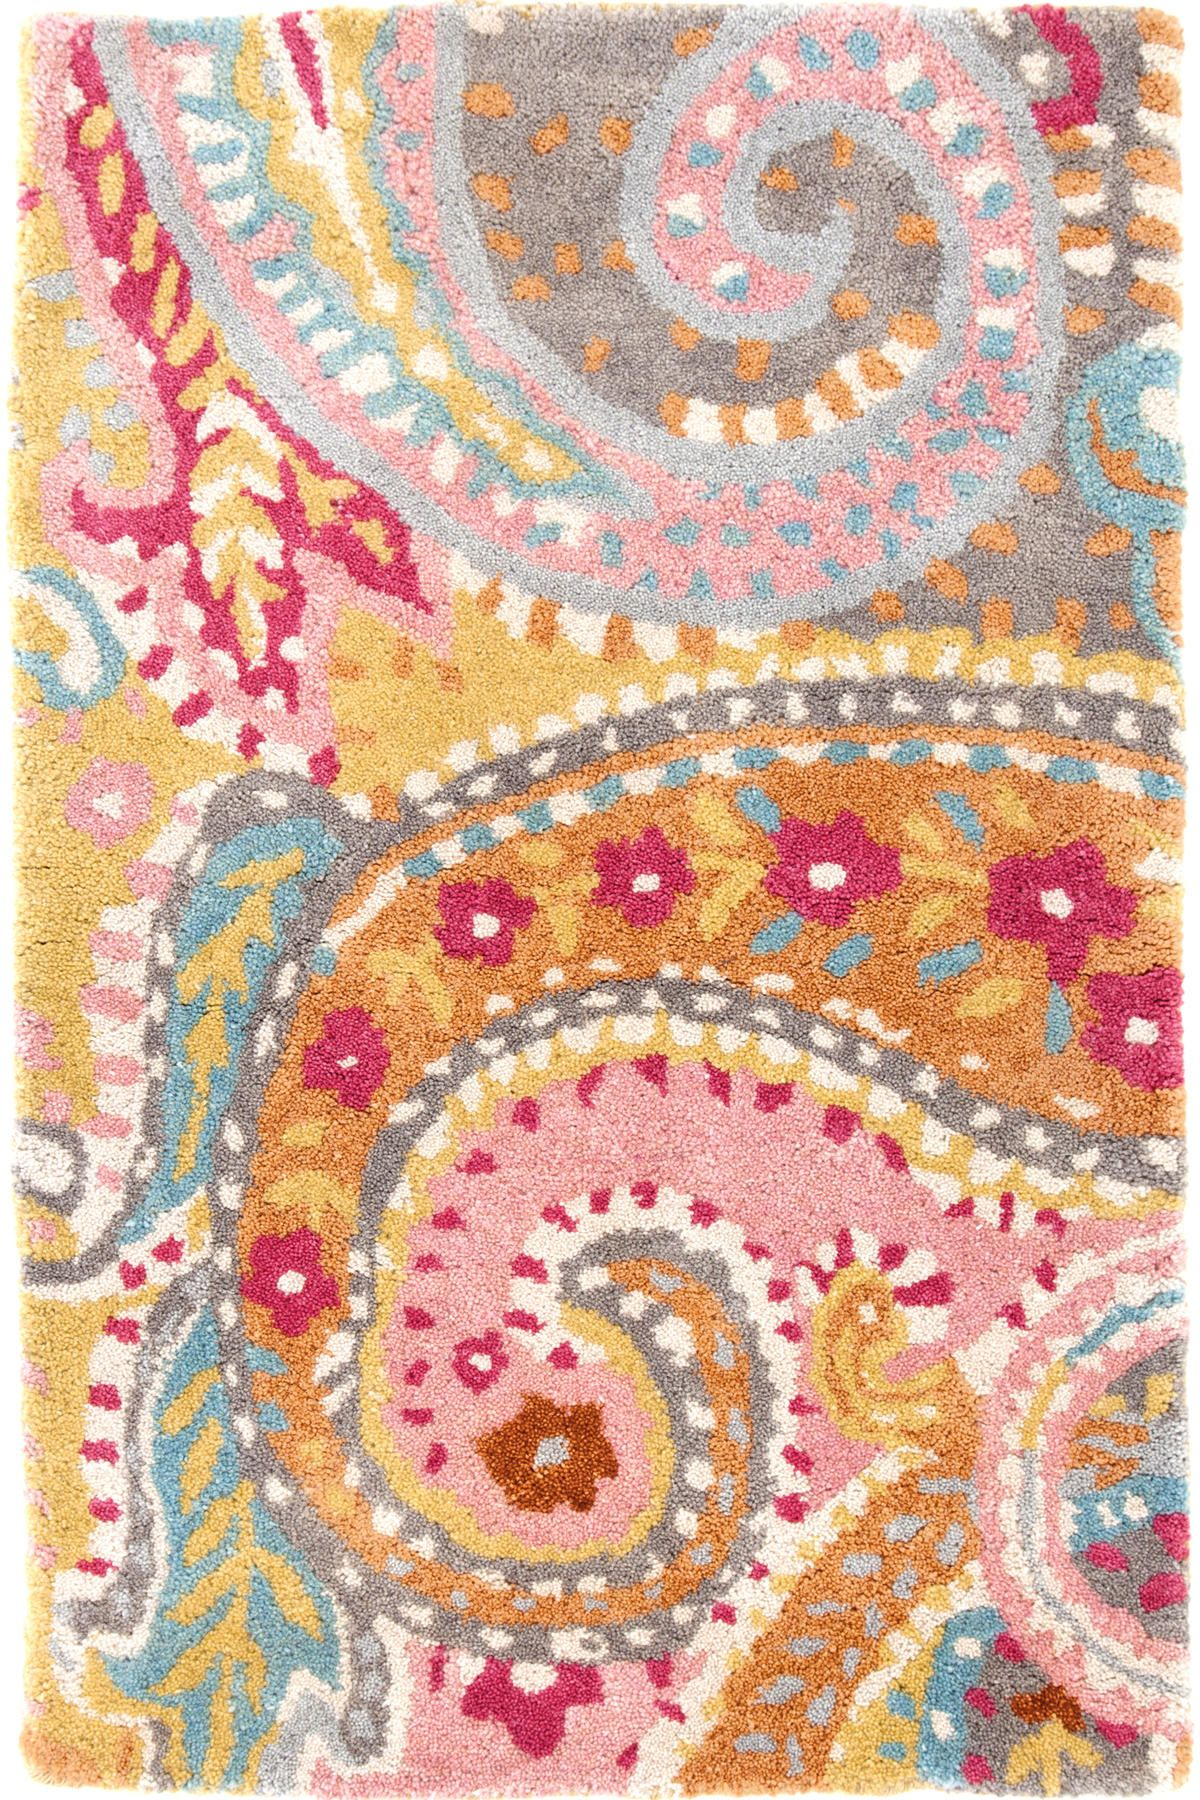 Lyric Paisley Wool Tufted Rug The Outlet With Images Paisley